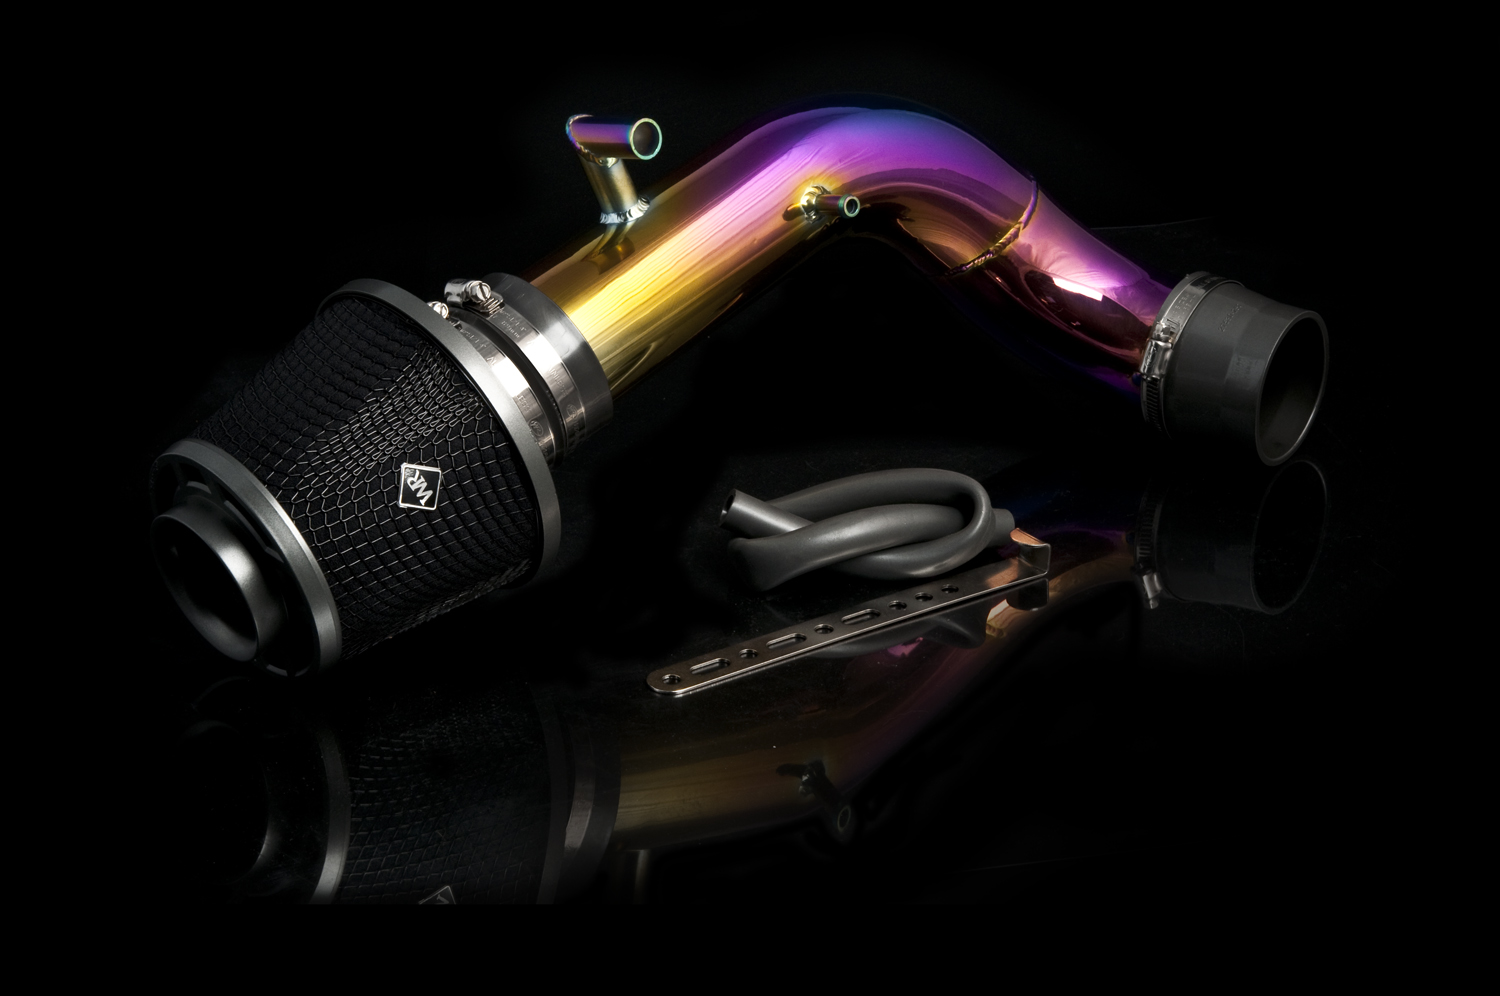 Weapon R 02-06 RSX Type-S Limited Edition Neo Titanium Secret Weapon Intake